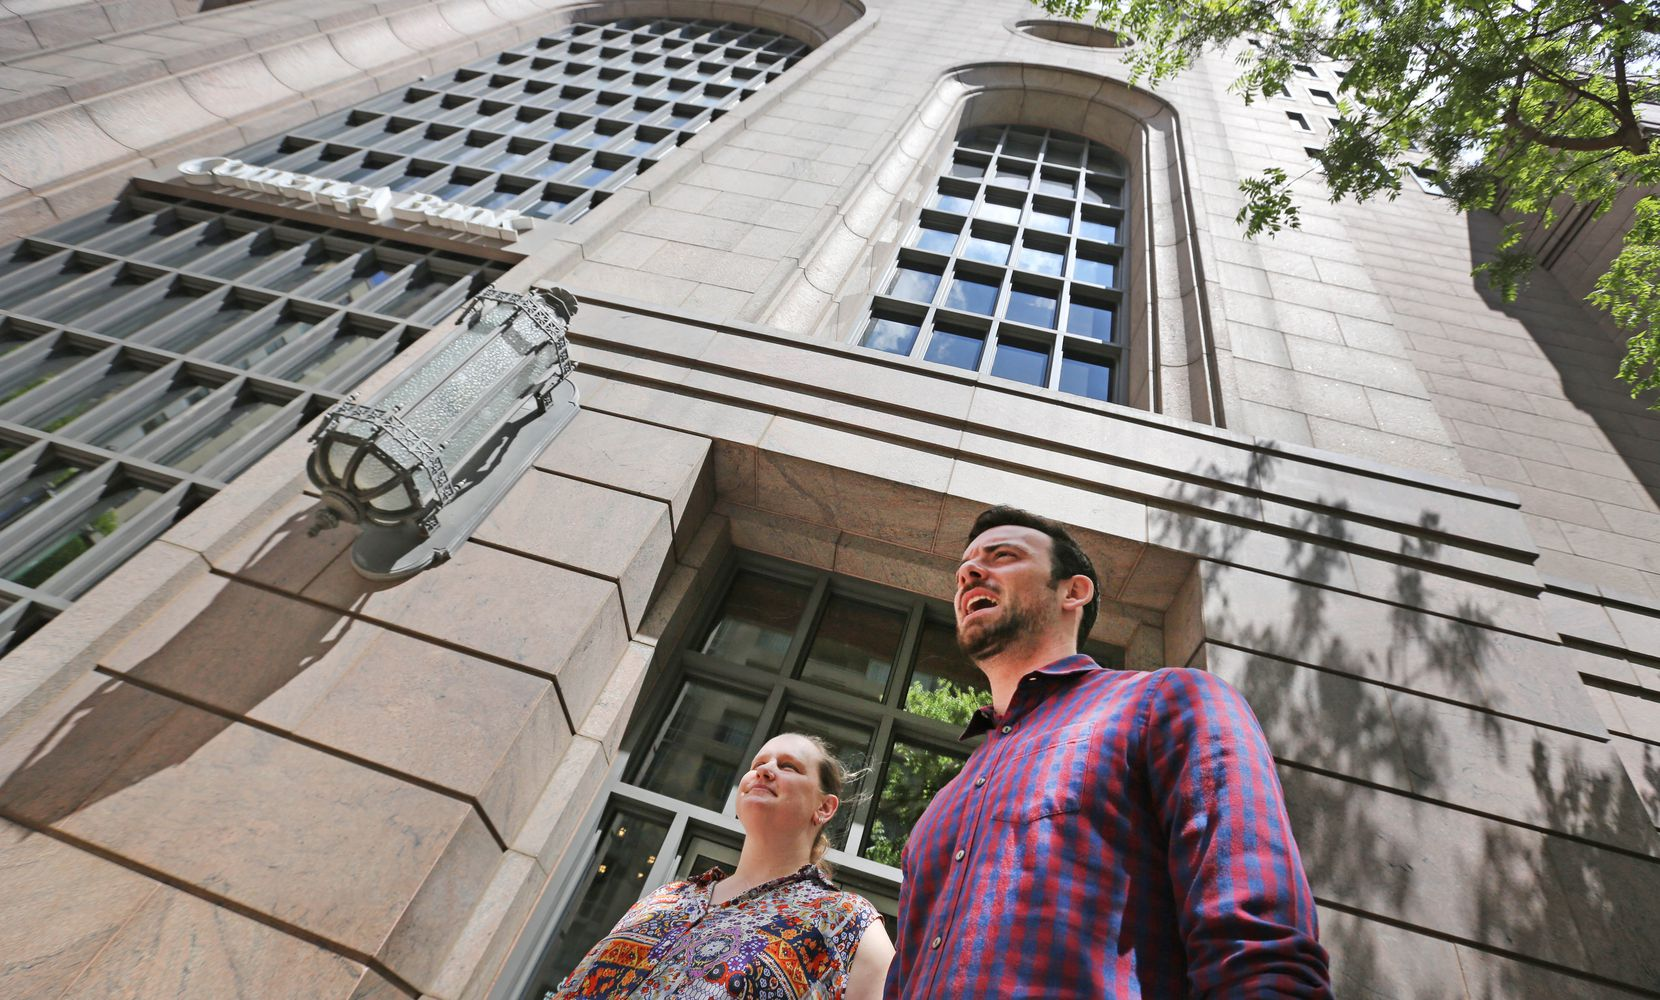 Dallas Morning News reporter Brendan Meyer and newspaper reader Xan Alexander try to get their bearings on street level as they look to enter the underground tunnels in downtown Dallas on Monday, April 23, 2018.